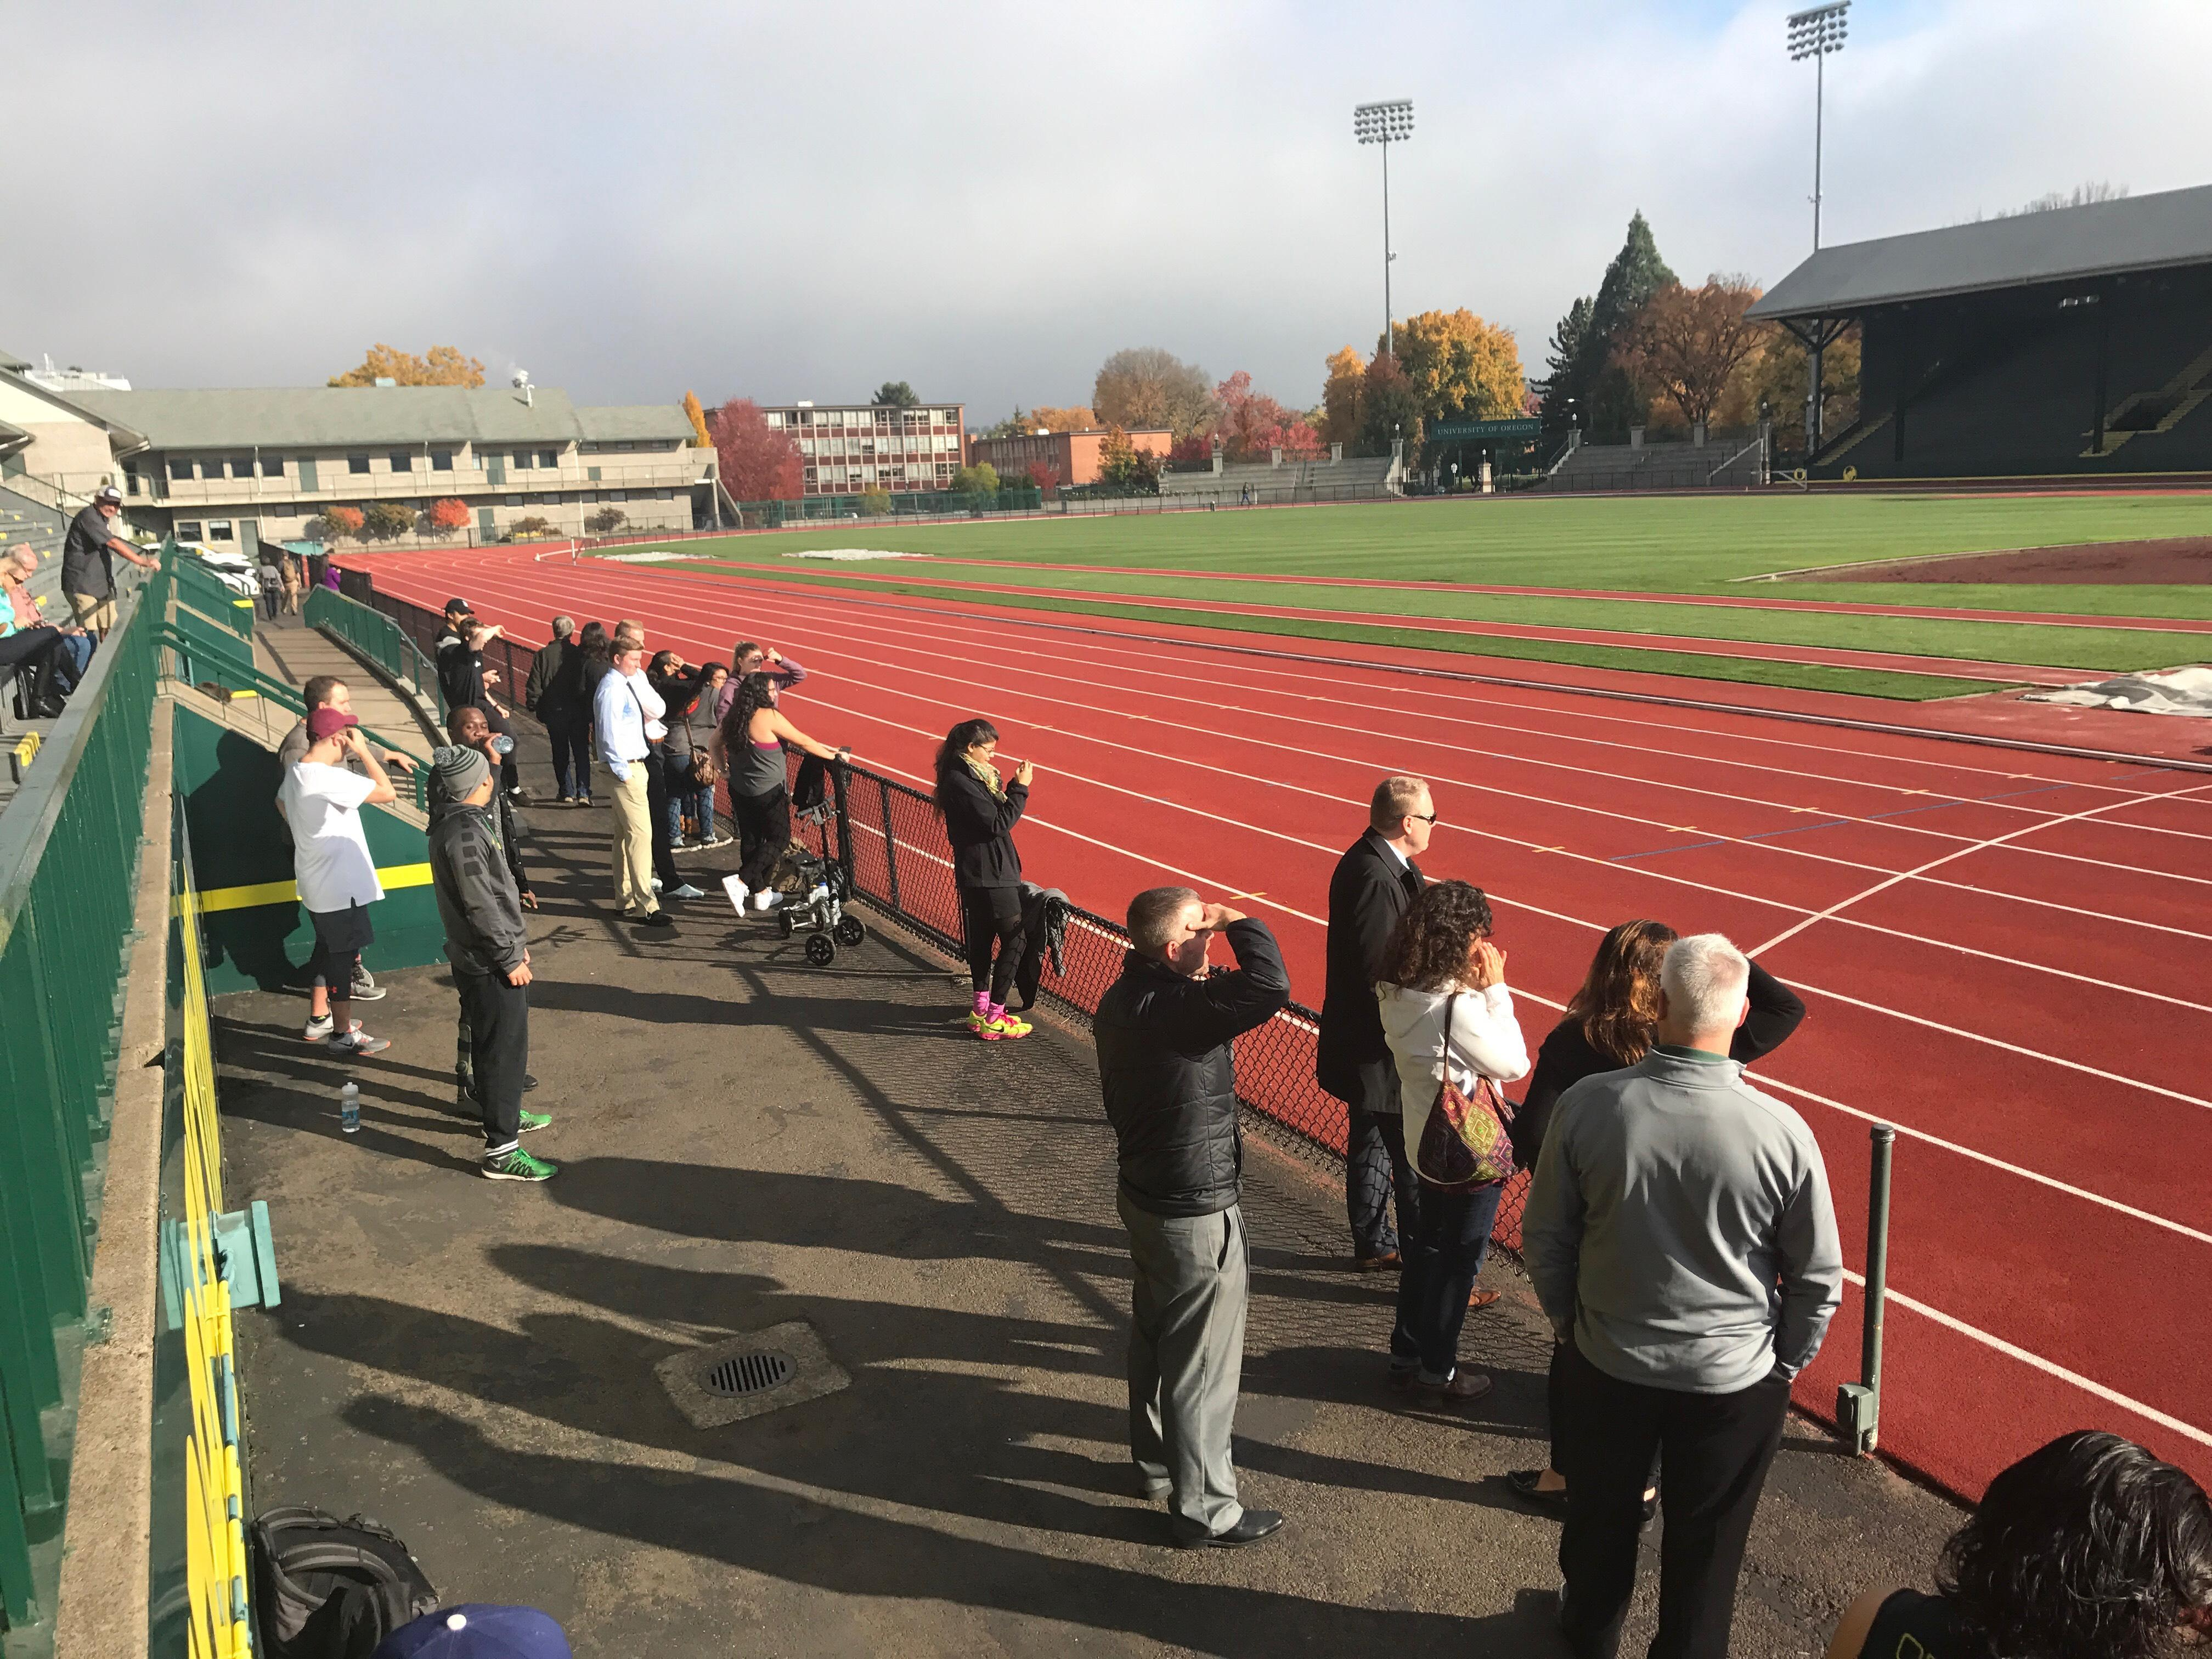 Spectators view the first ever Quack Track Pitch on October 27th, 2017. at Hayward Field in Eugene, Ore.{&amp;nbsp;}{&amp;nbsp;}<p></p>